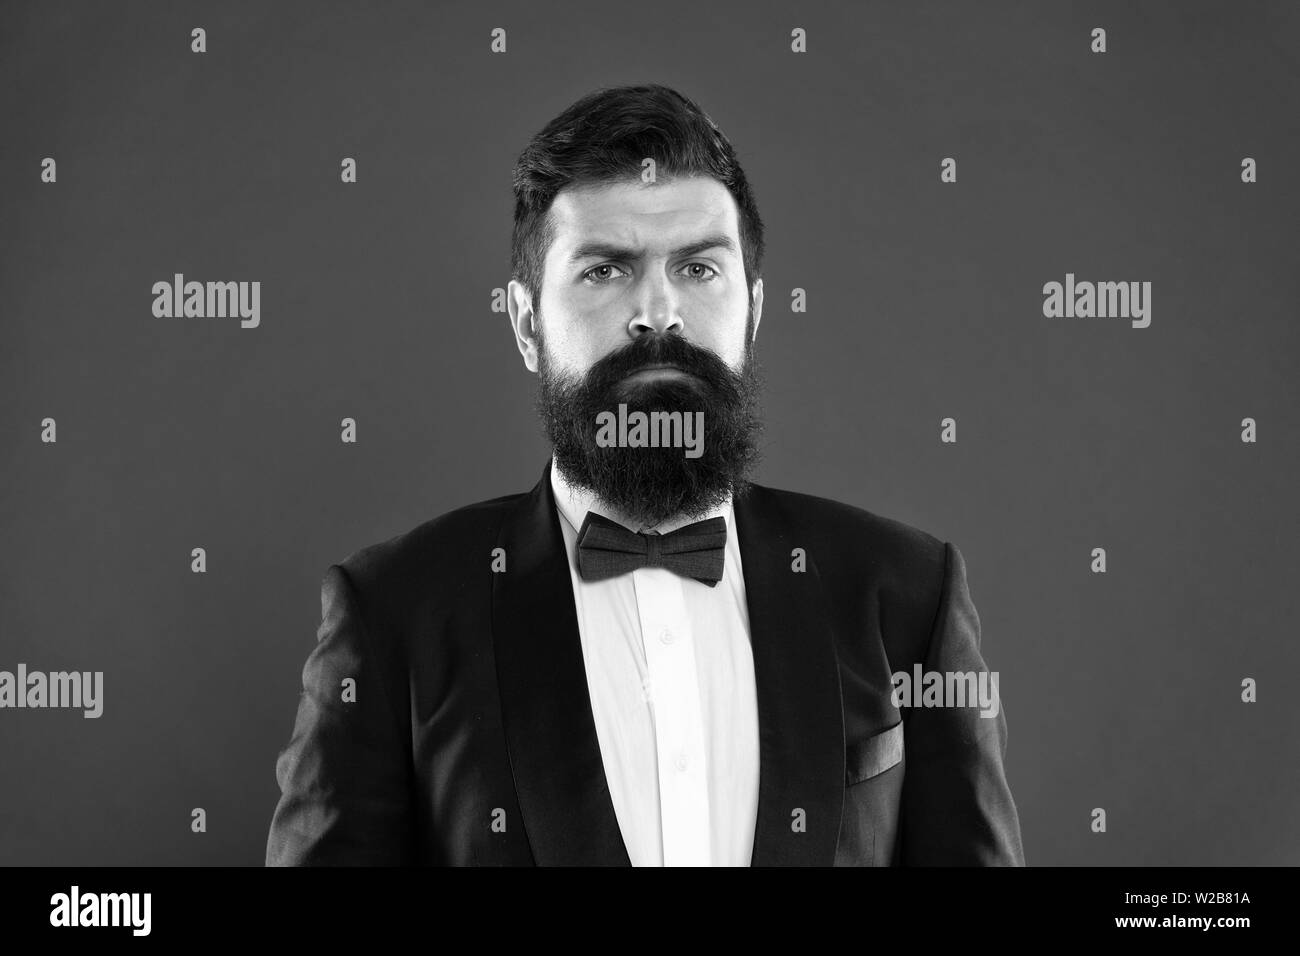 Bearded man in tuxedo and bow tie. Formal event. bearded man groom with beard in wedding suit. Businessman in tailored tuxedo. Formal wear male fashion. bearded hipster man. bearded groom in tuxedo. - Stock Image